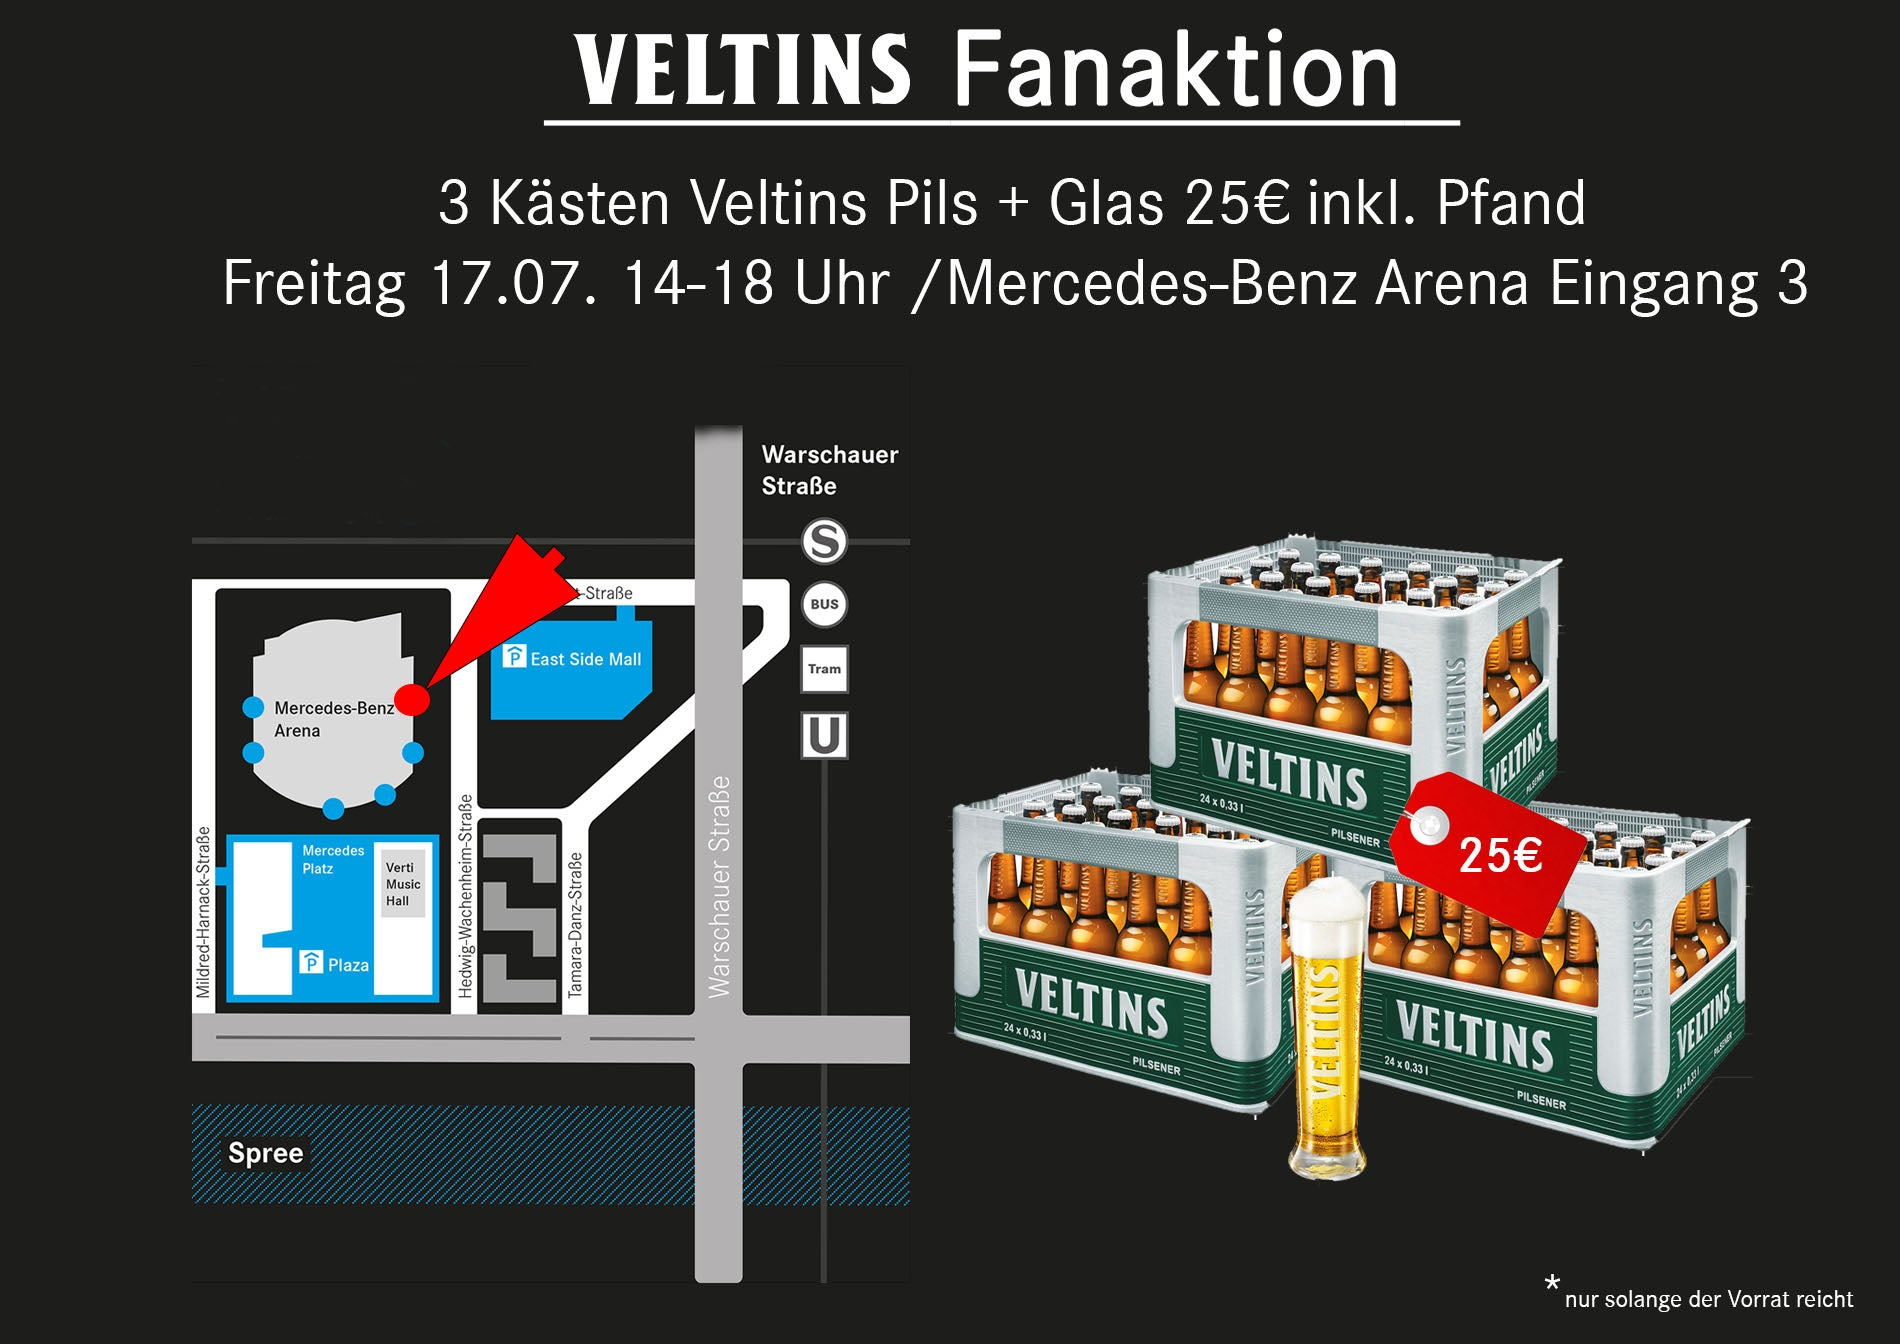 Veltins Fanaktion.jpg